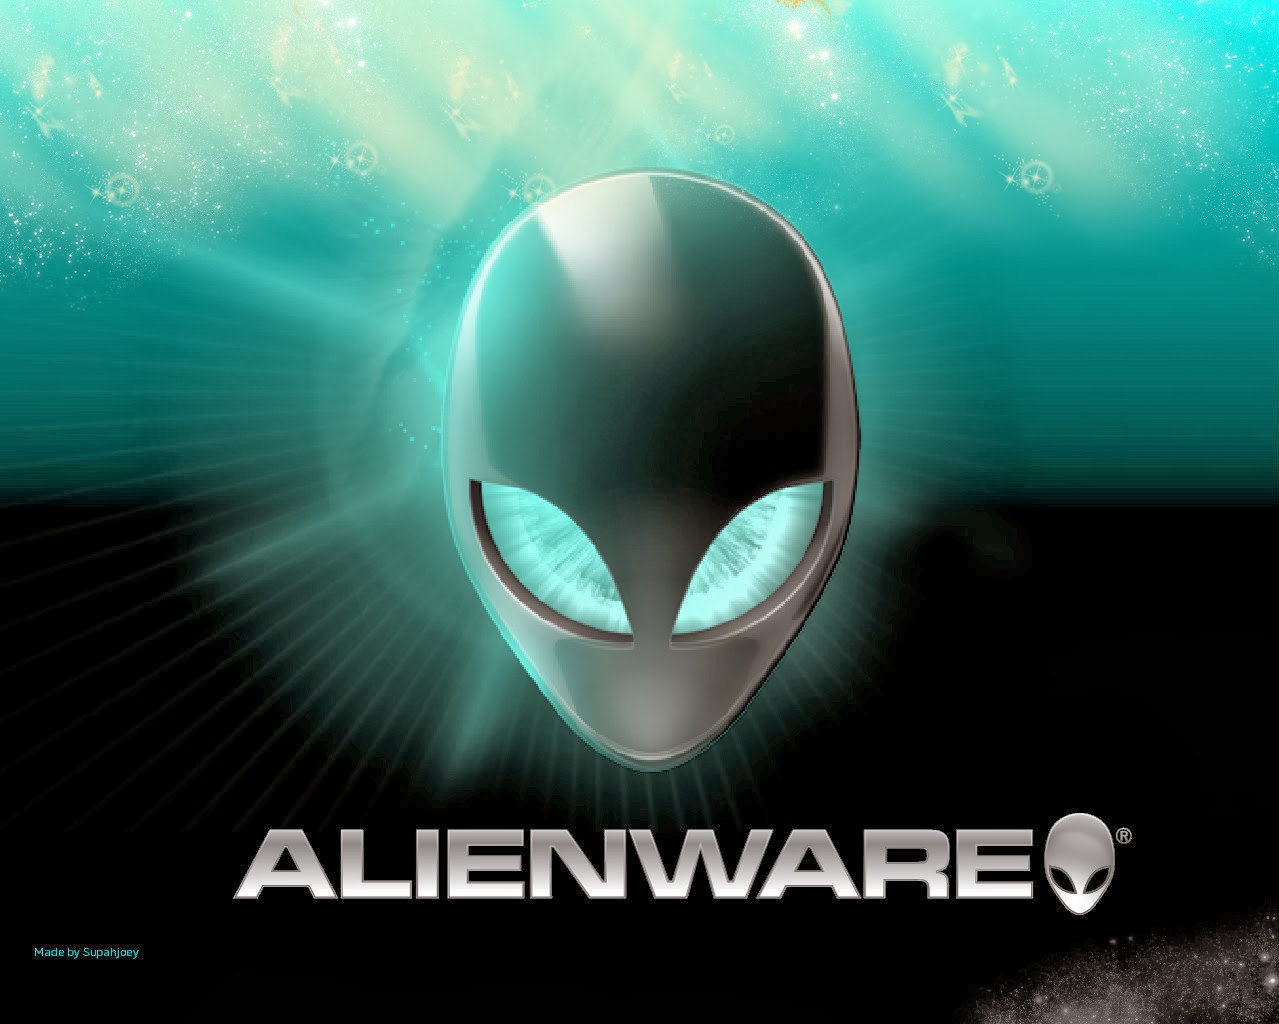 alienware desktop wallpapers | full hd wallpaper for pc | download